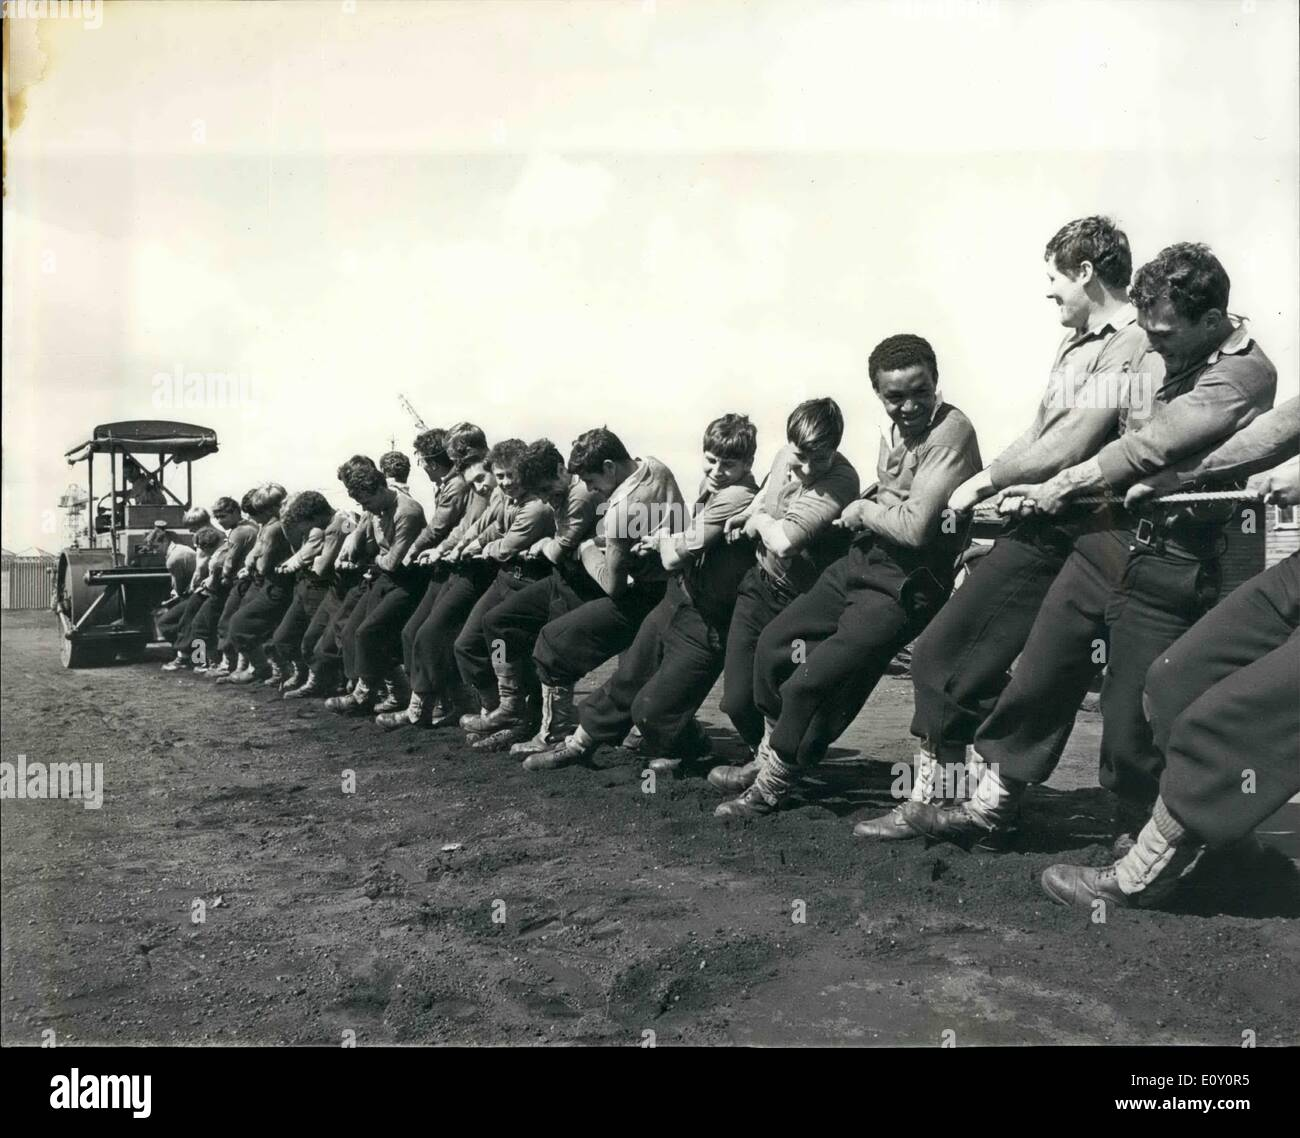 May 05, 1968 - Field gun crew at H.M.S drake take on a ten ton road roller in tug of war match: Devonport field off their week end training session with a tug of war against a ten ton road roller. The roller is kept nearby to roll the training ground after each run, and yesterday after normal training finished the No.1 trainer, P.O (PTI) 'Sandy' Powell, got into the driving seat and challenged the boys. About two dozen tool up the rope and dragged the roller backwards easily (or at least it looked easy) - Stock Image